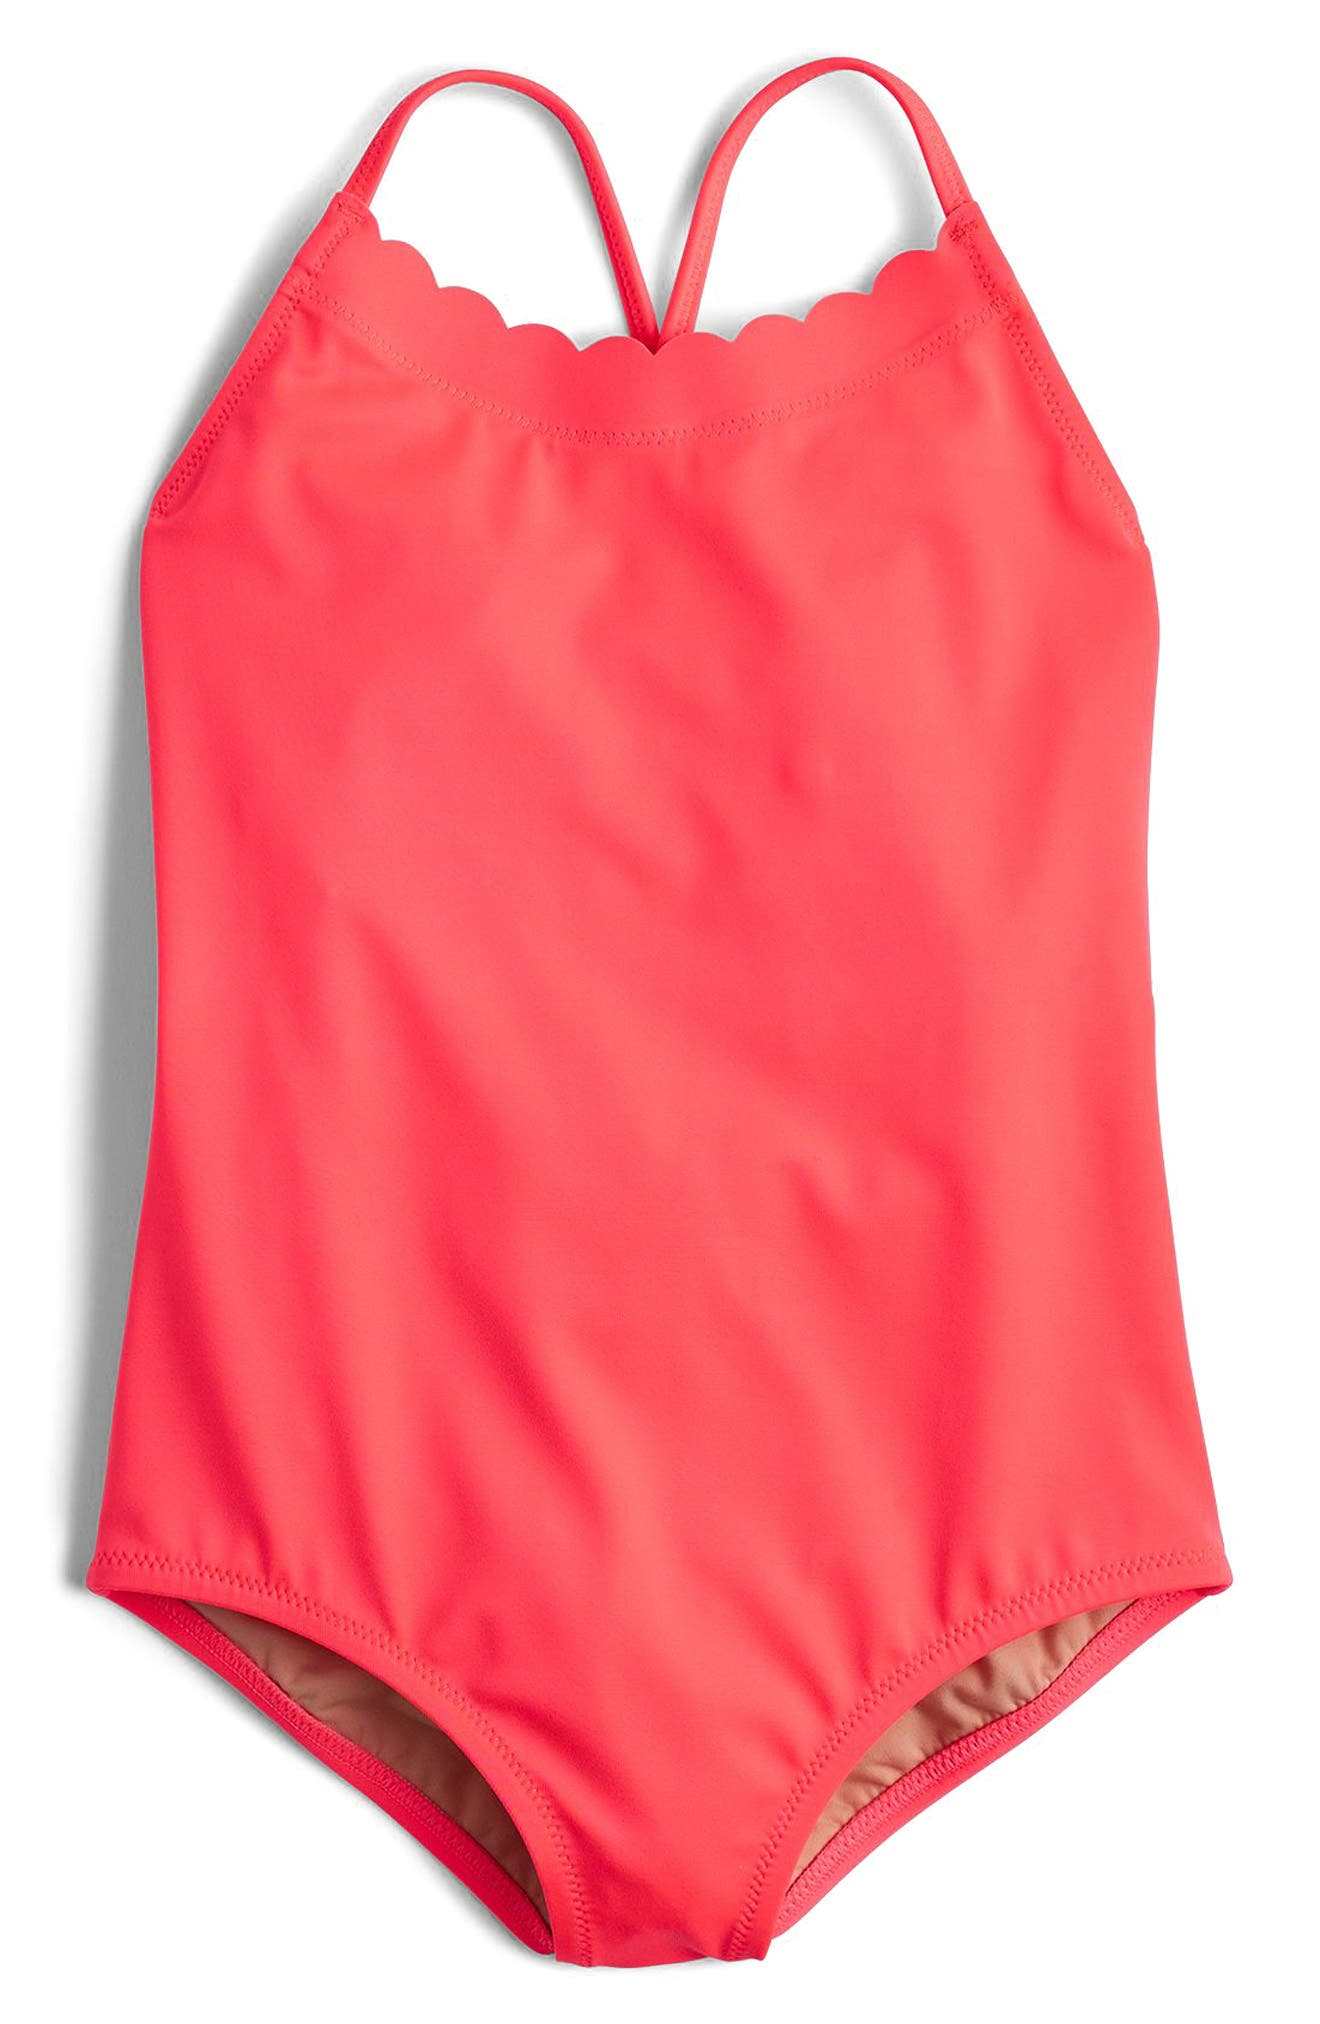 Alternate Image 1 Selected - crewcuts by J.Crew Scalloped One-Piece Swimsuit (Toddler Girls, Little Girls & Big Girls)